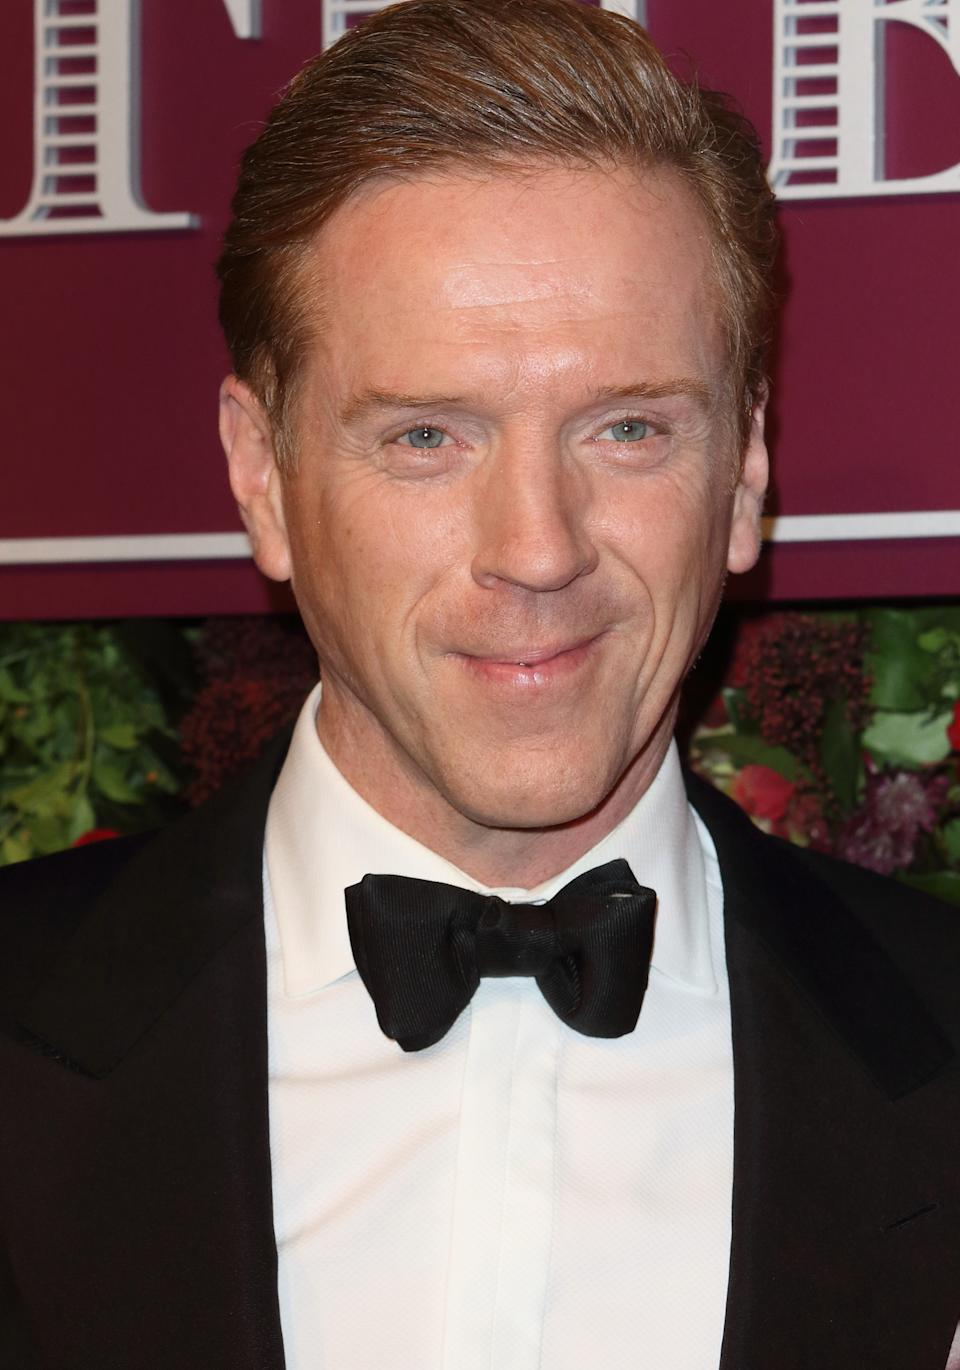 Prince Harry said he wanted Damian Lewis to play him. (SOPA Images)